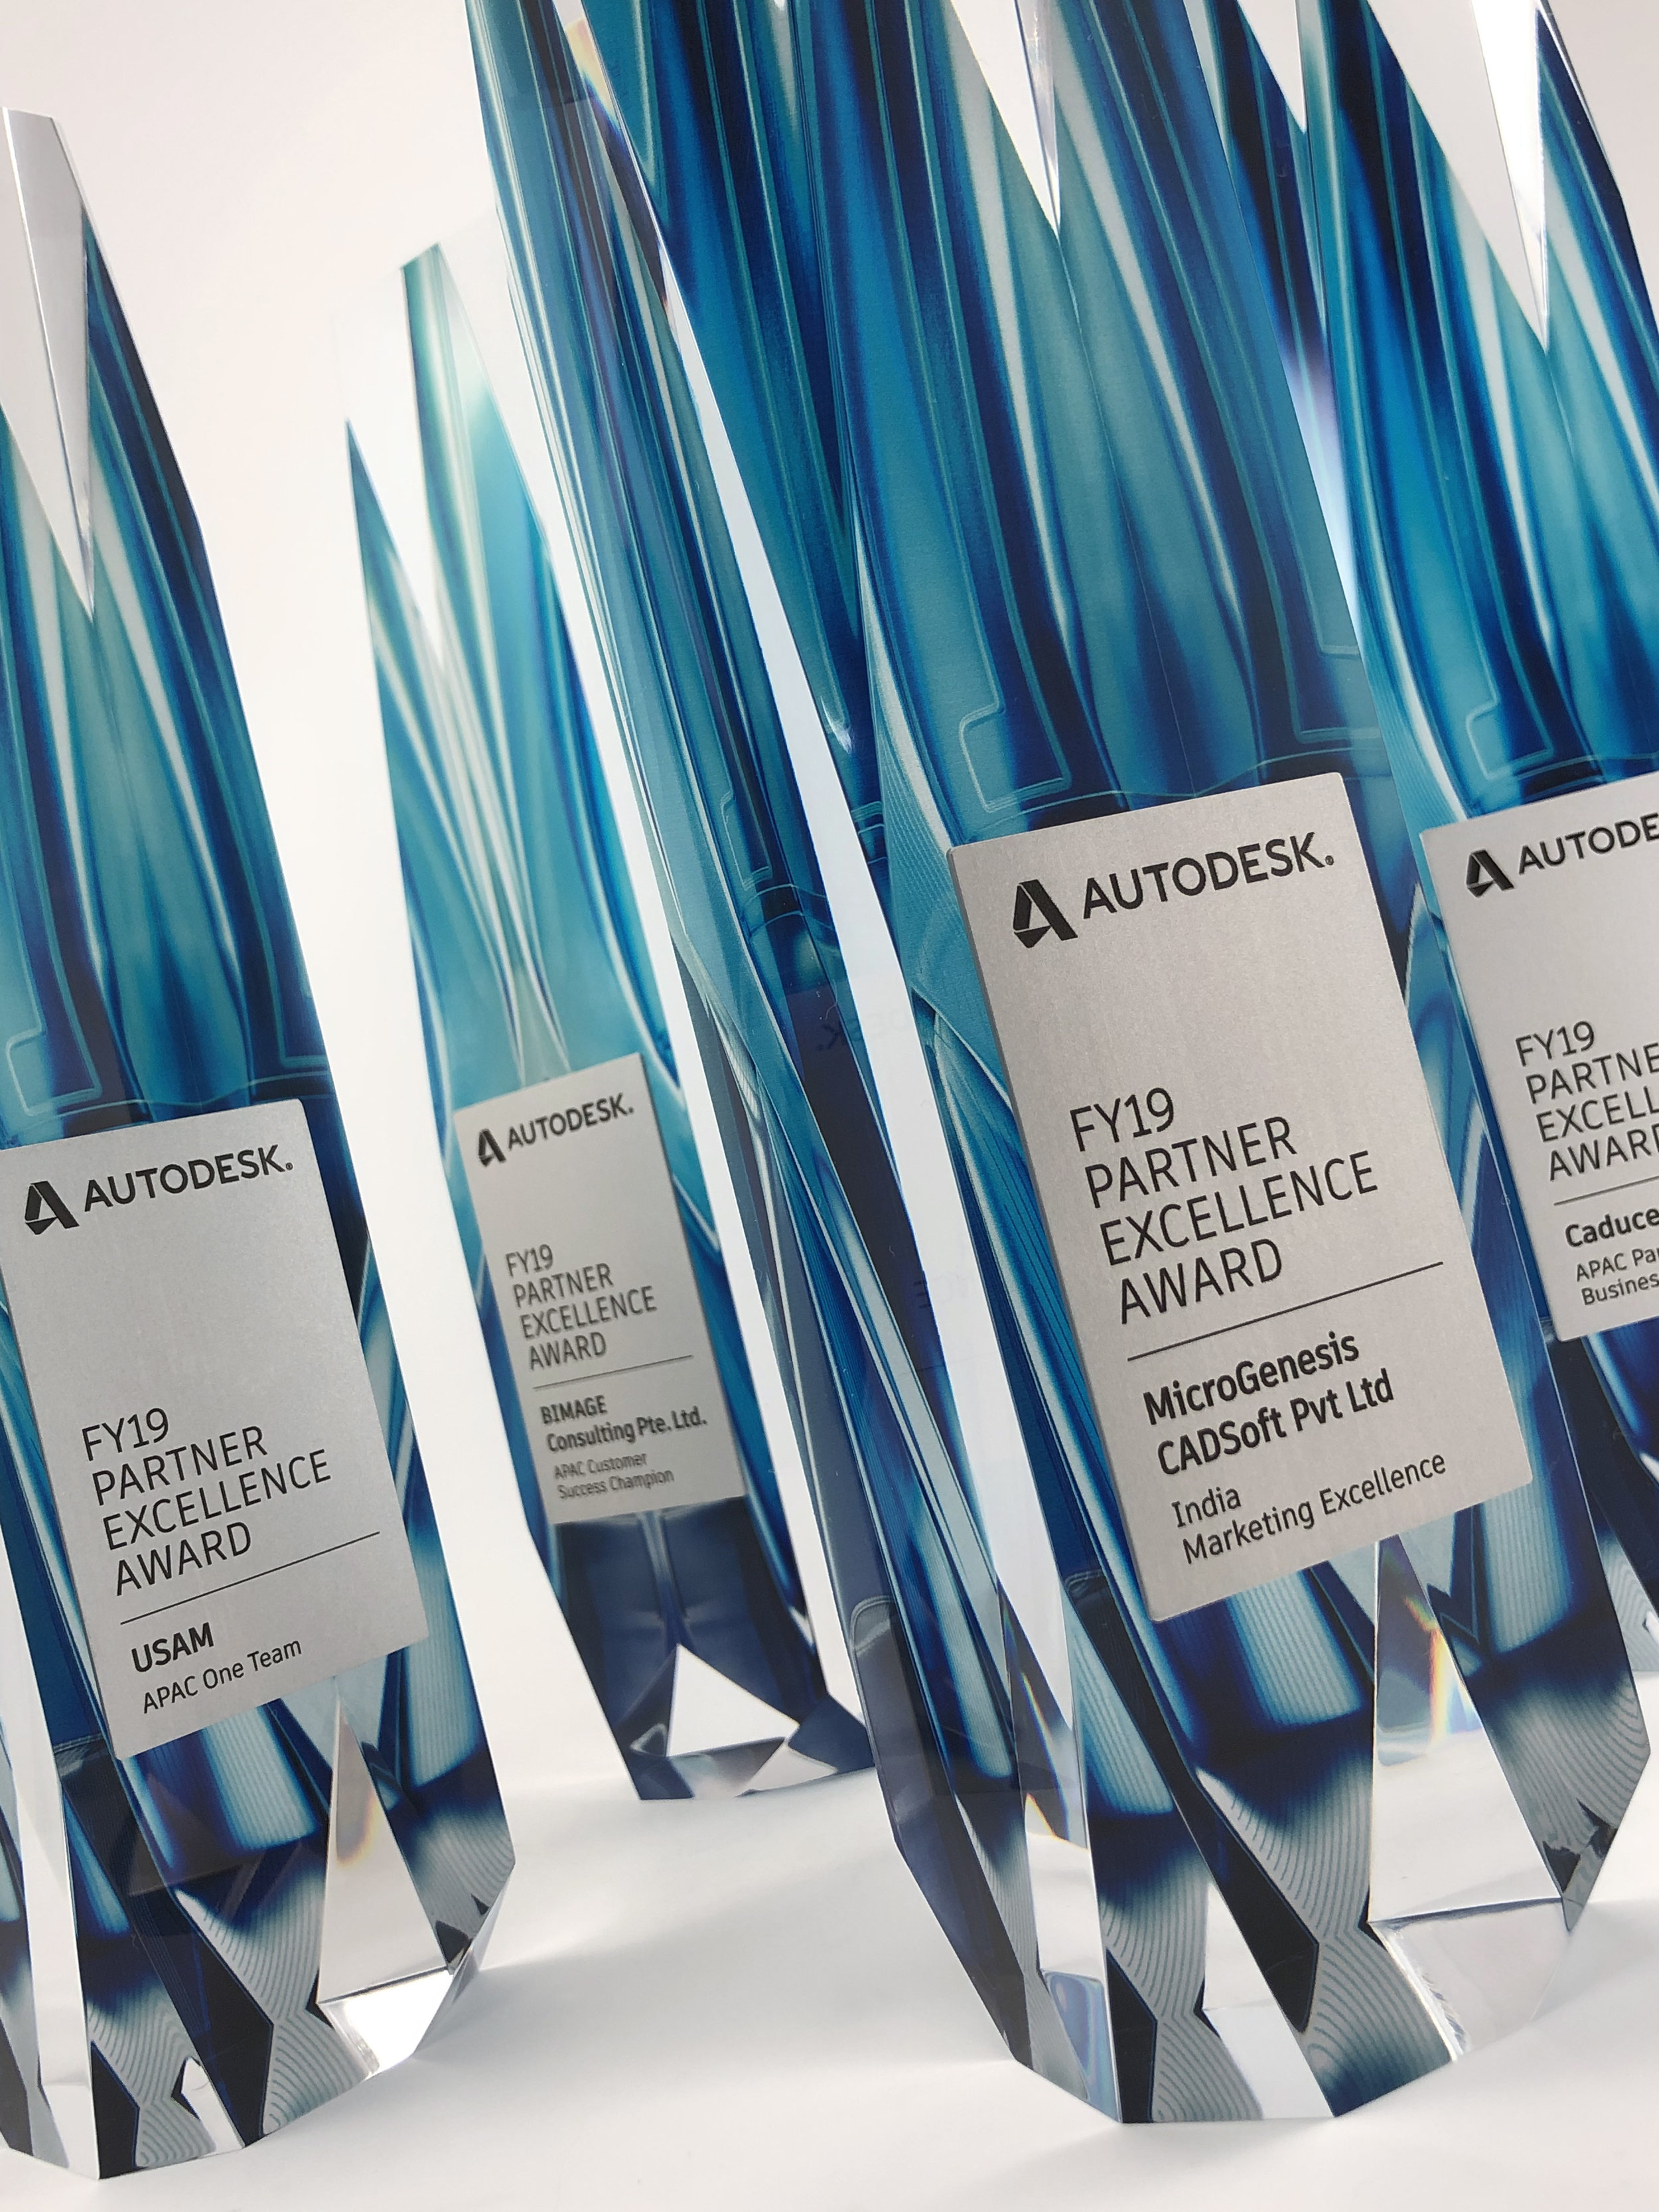 autodesck-apac-partner-excellence-awards-acrylic-graphic-art-trophy-02.jpg